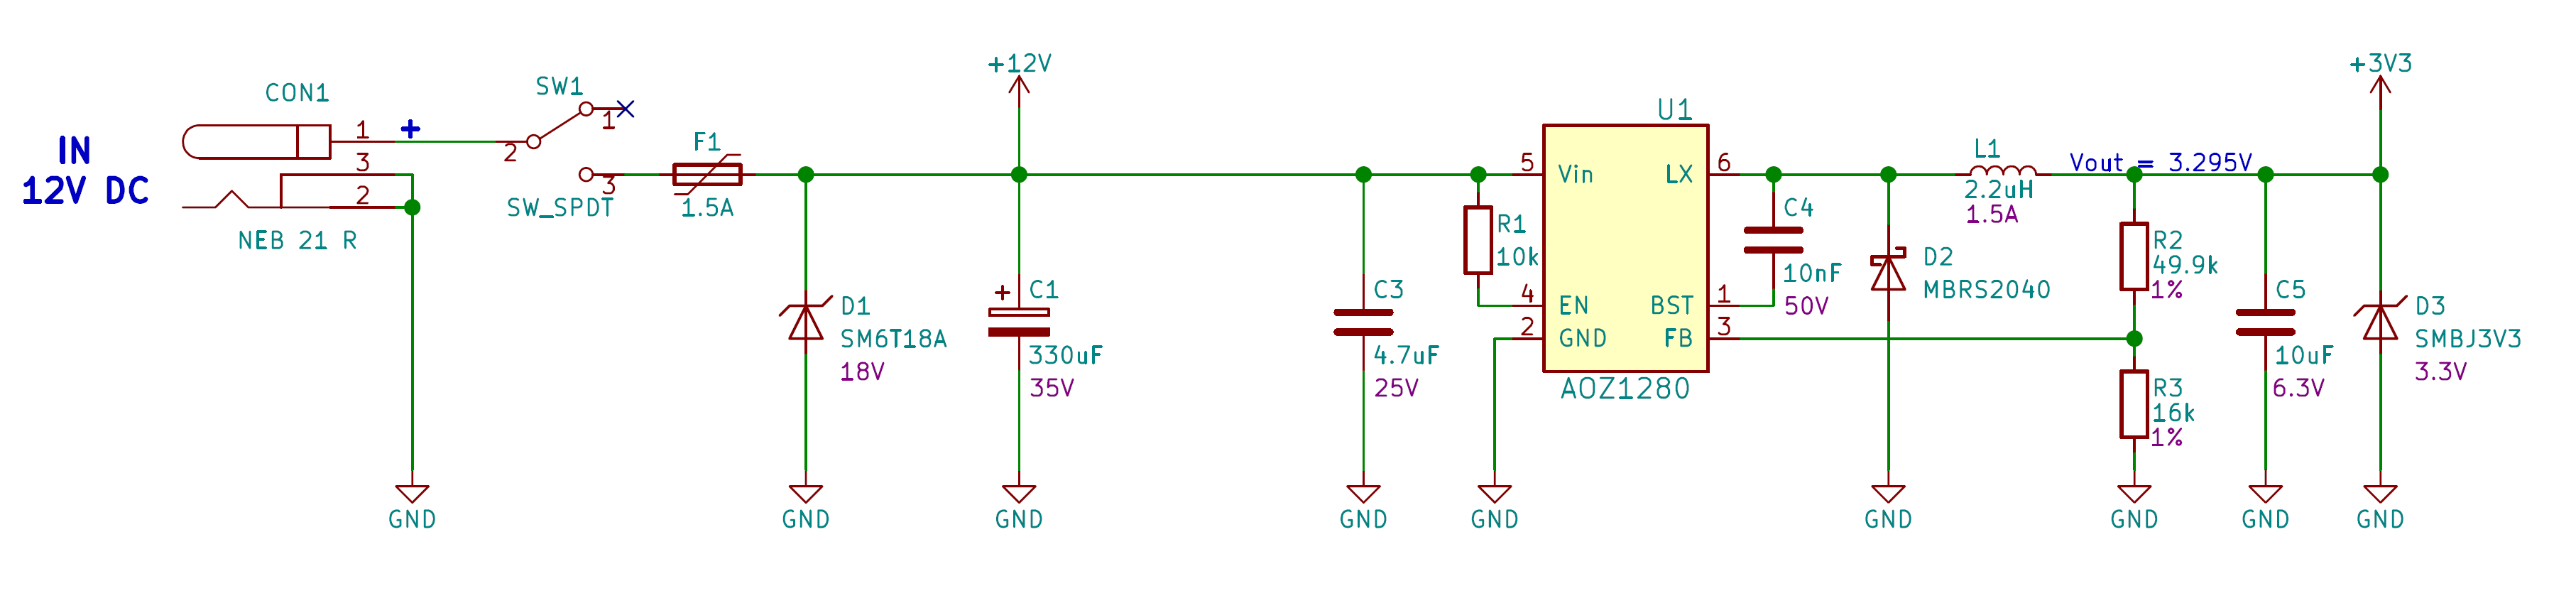 BP/pictures/power_supply.png